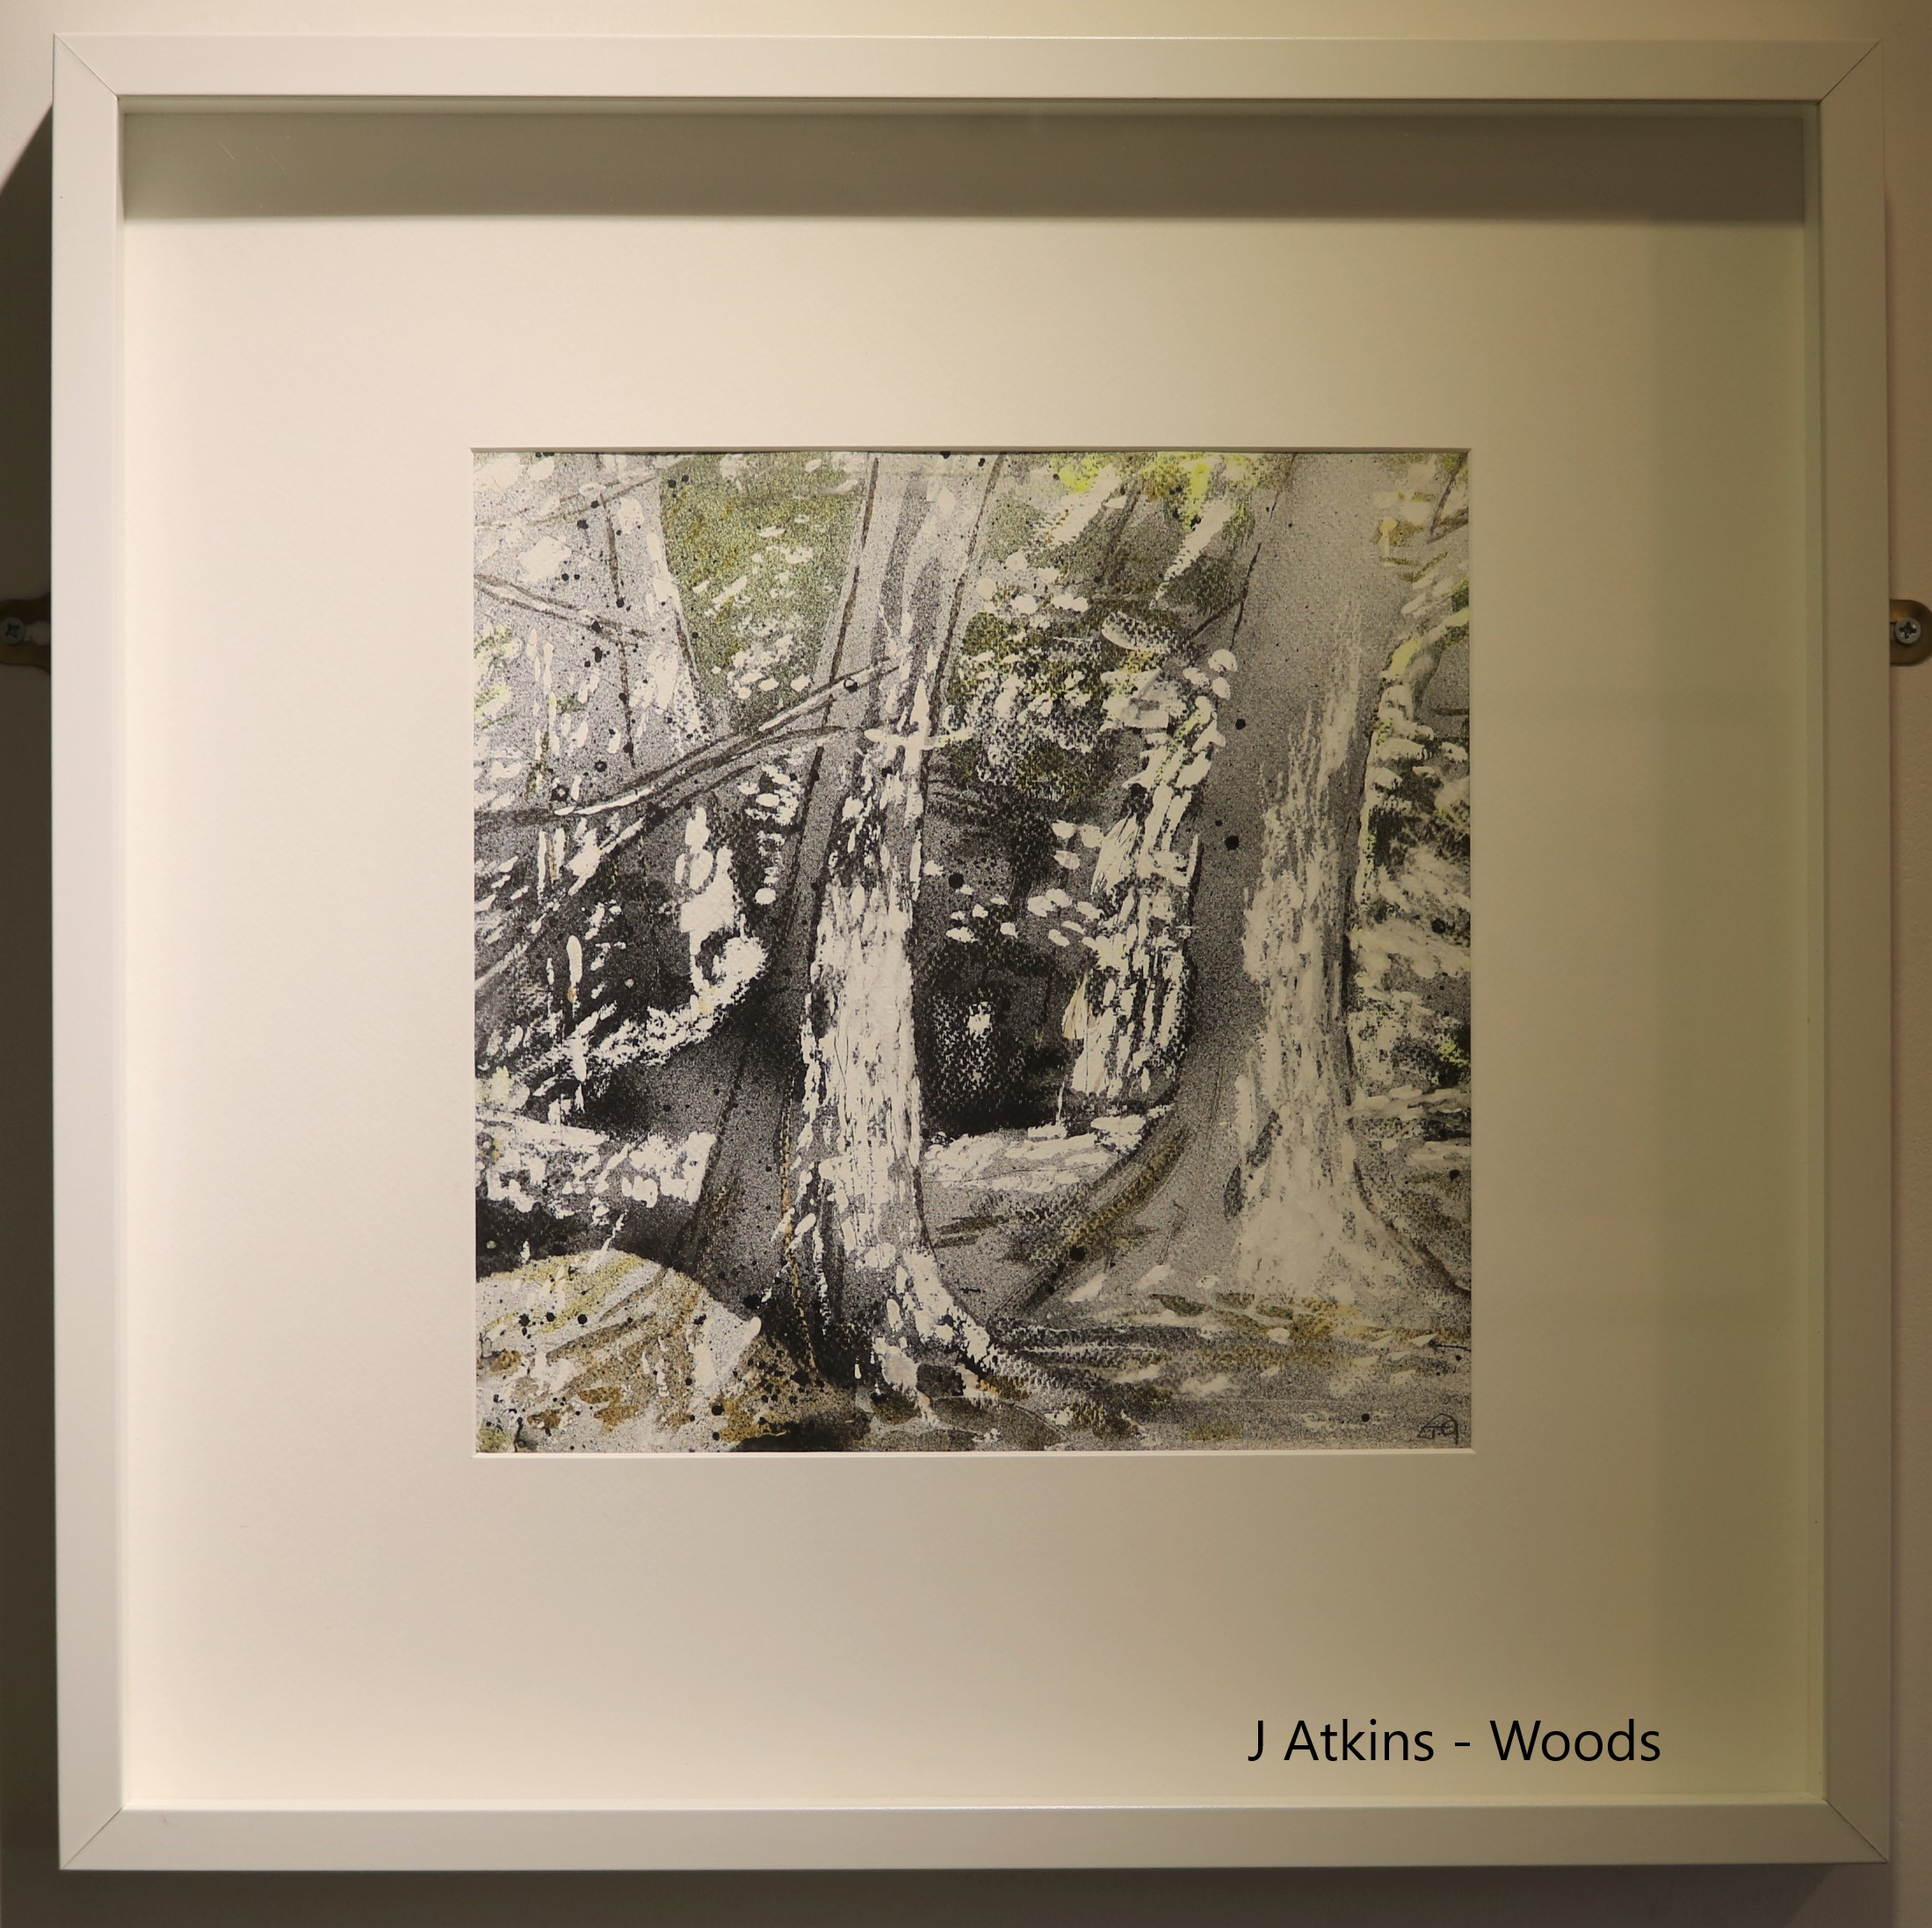 Atkins_J_Woods